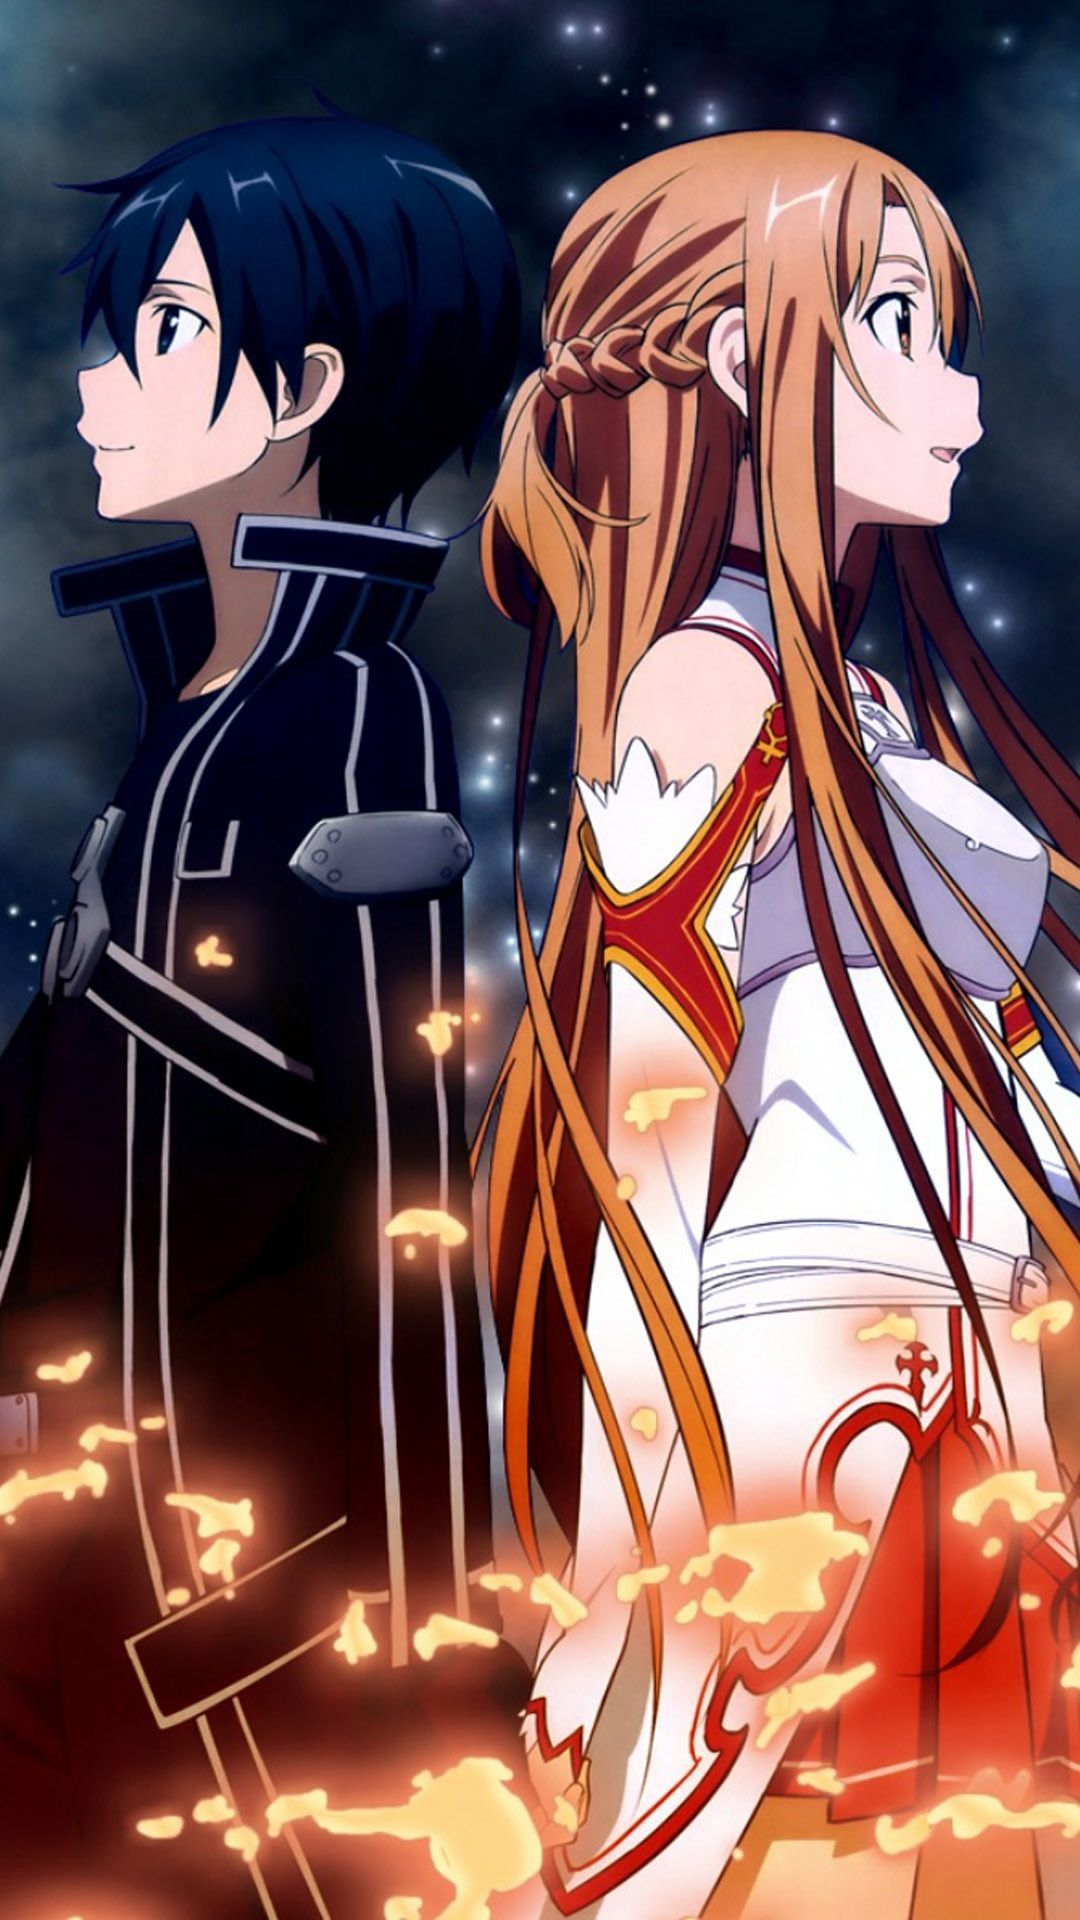 Sao Japan Wallpapers Ideas In 2020 Sword Art Online Wallpaper